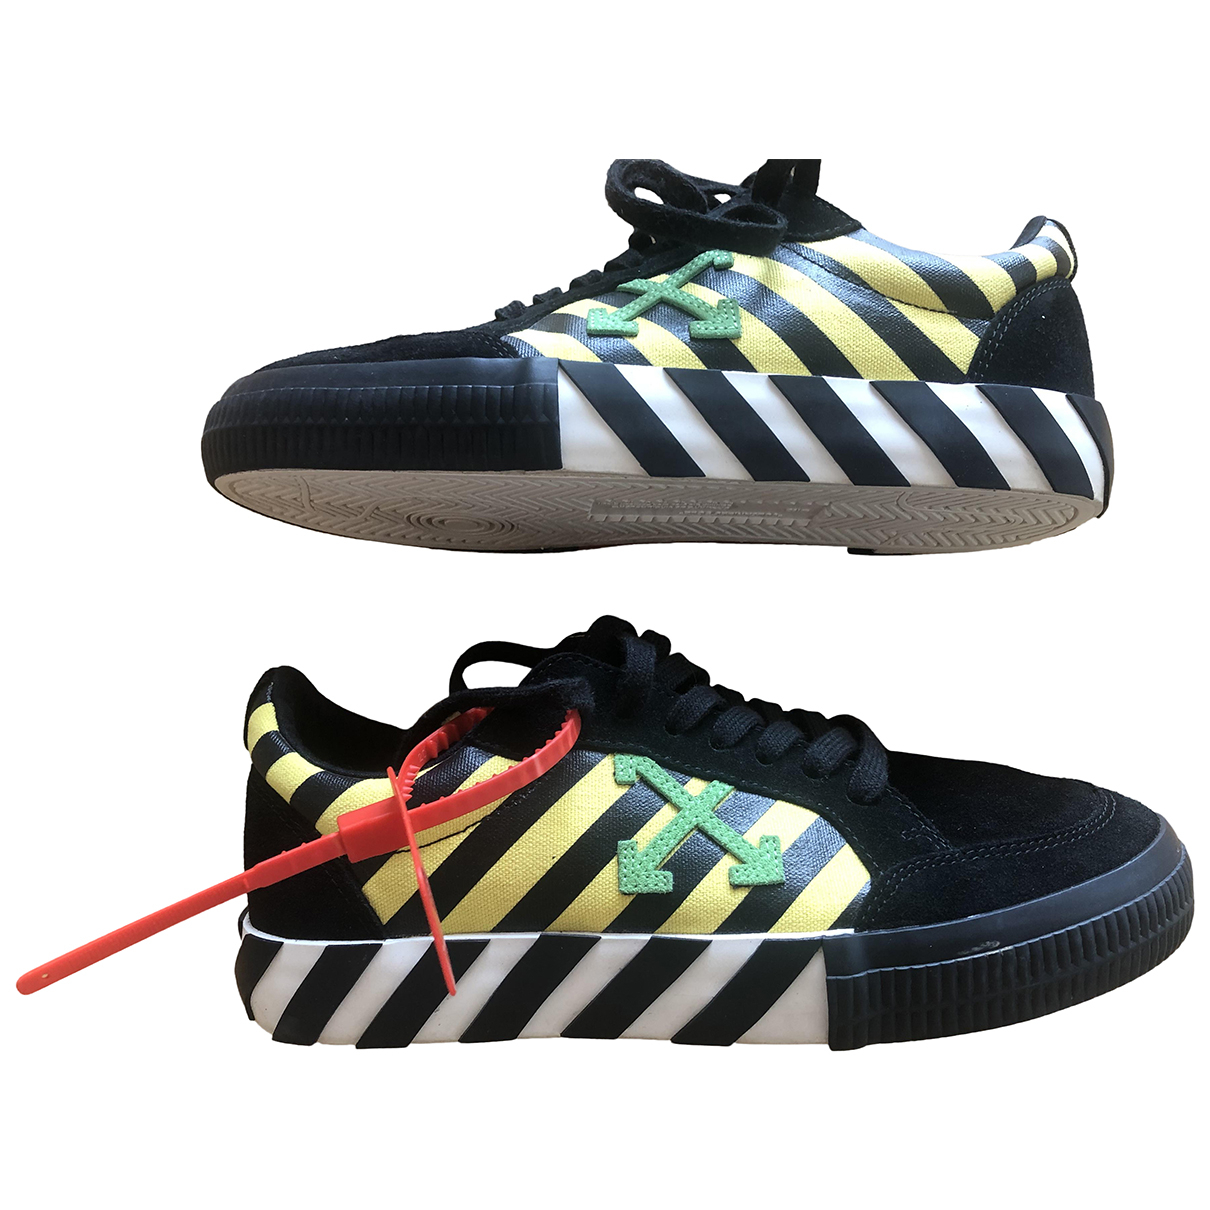 Off-white Vulc Black Suede Trainers for Men 40 EU